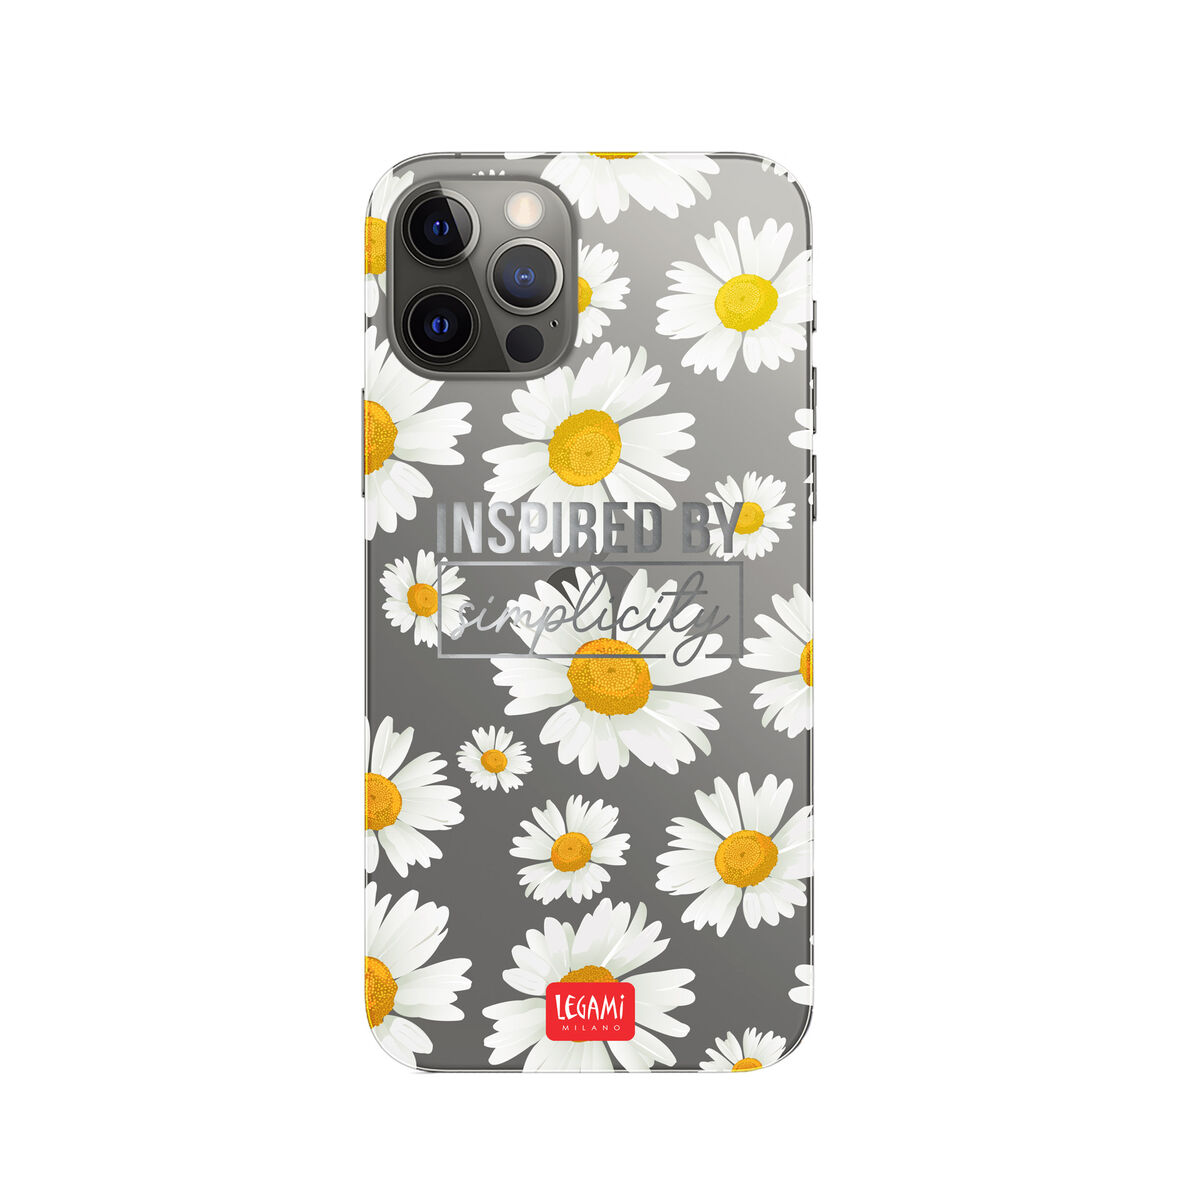 Cover Trasparente - iPhone 12 / 12 Pro, , zoo